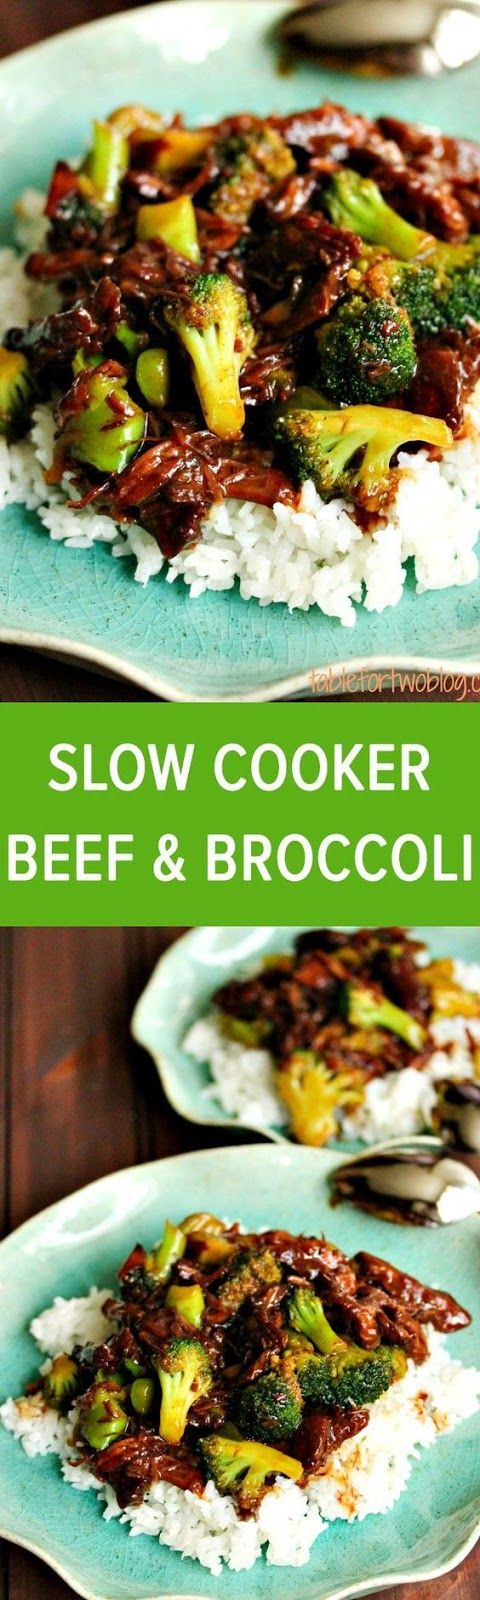 SLOW COOKER BEEF AND BROCCOLI | Food And Cake Recipes